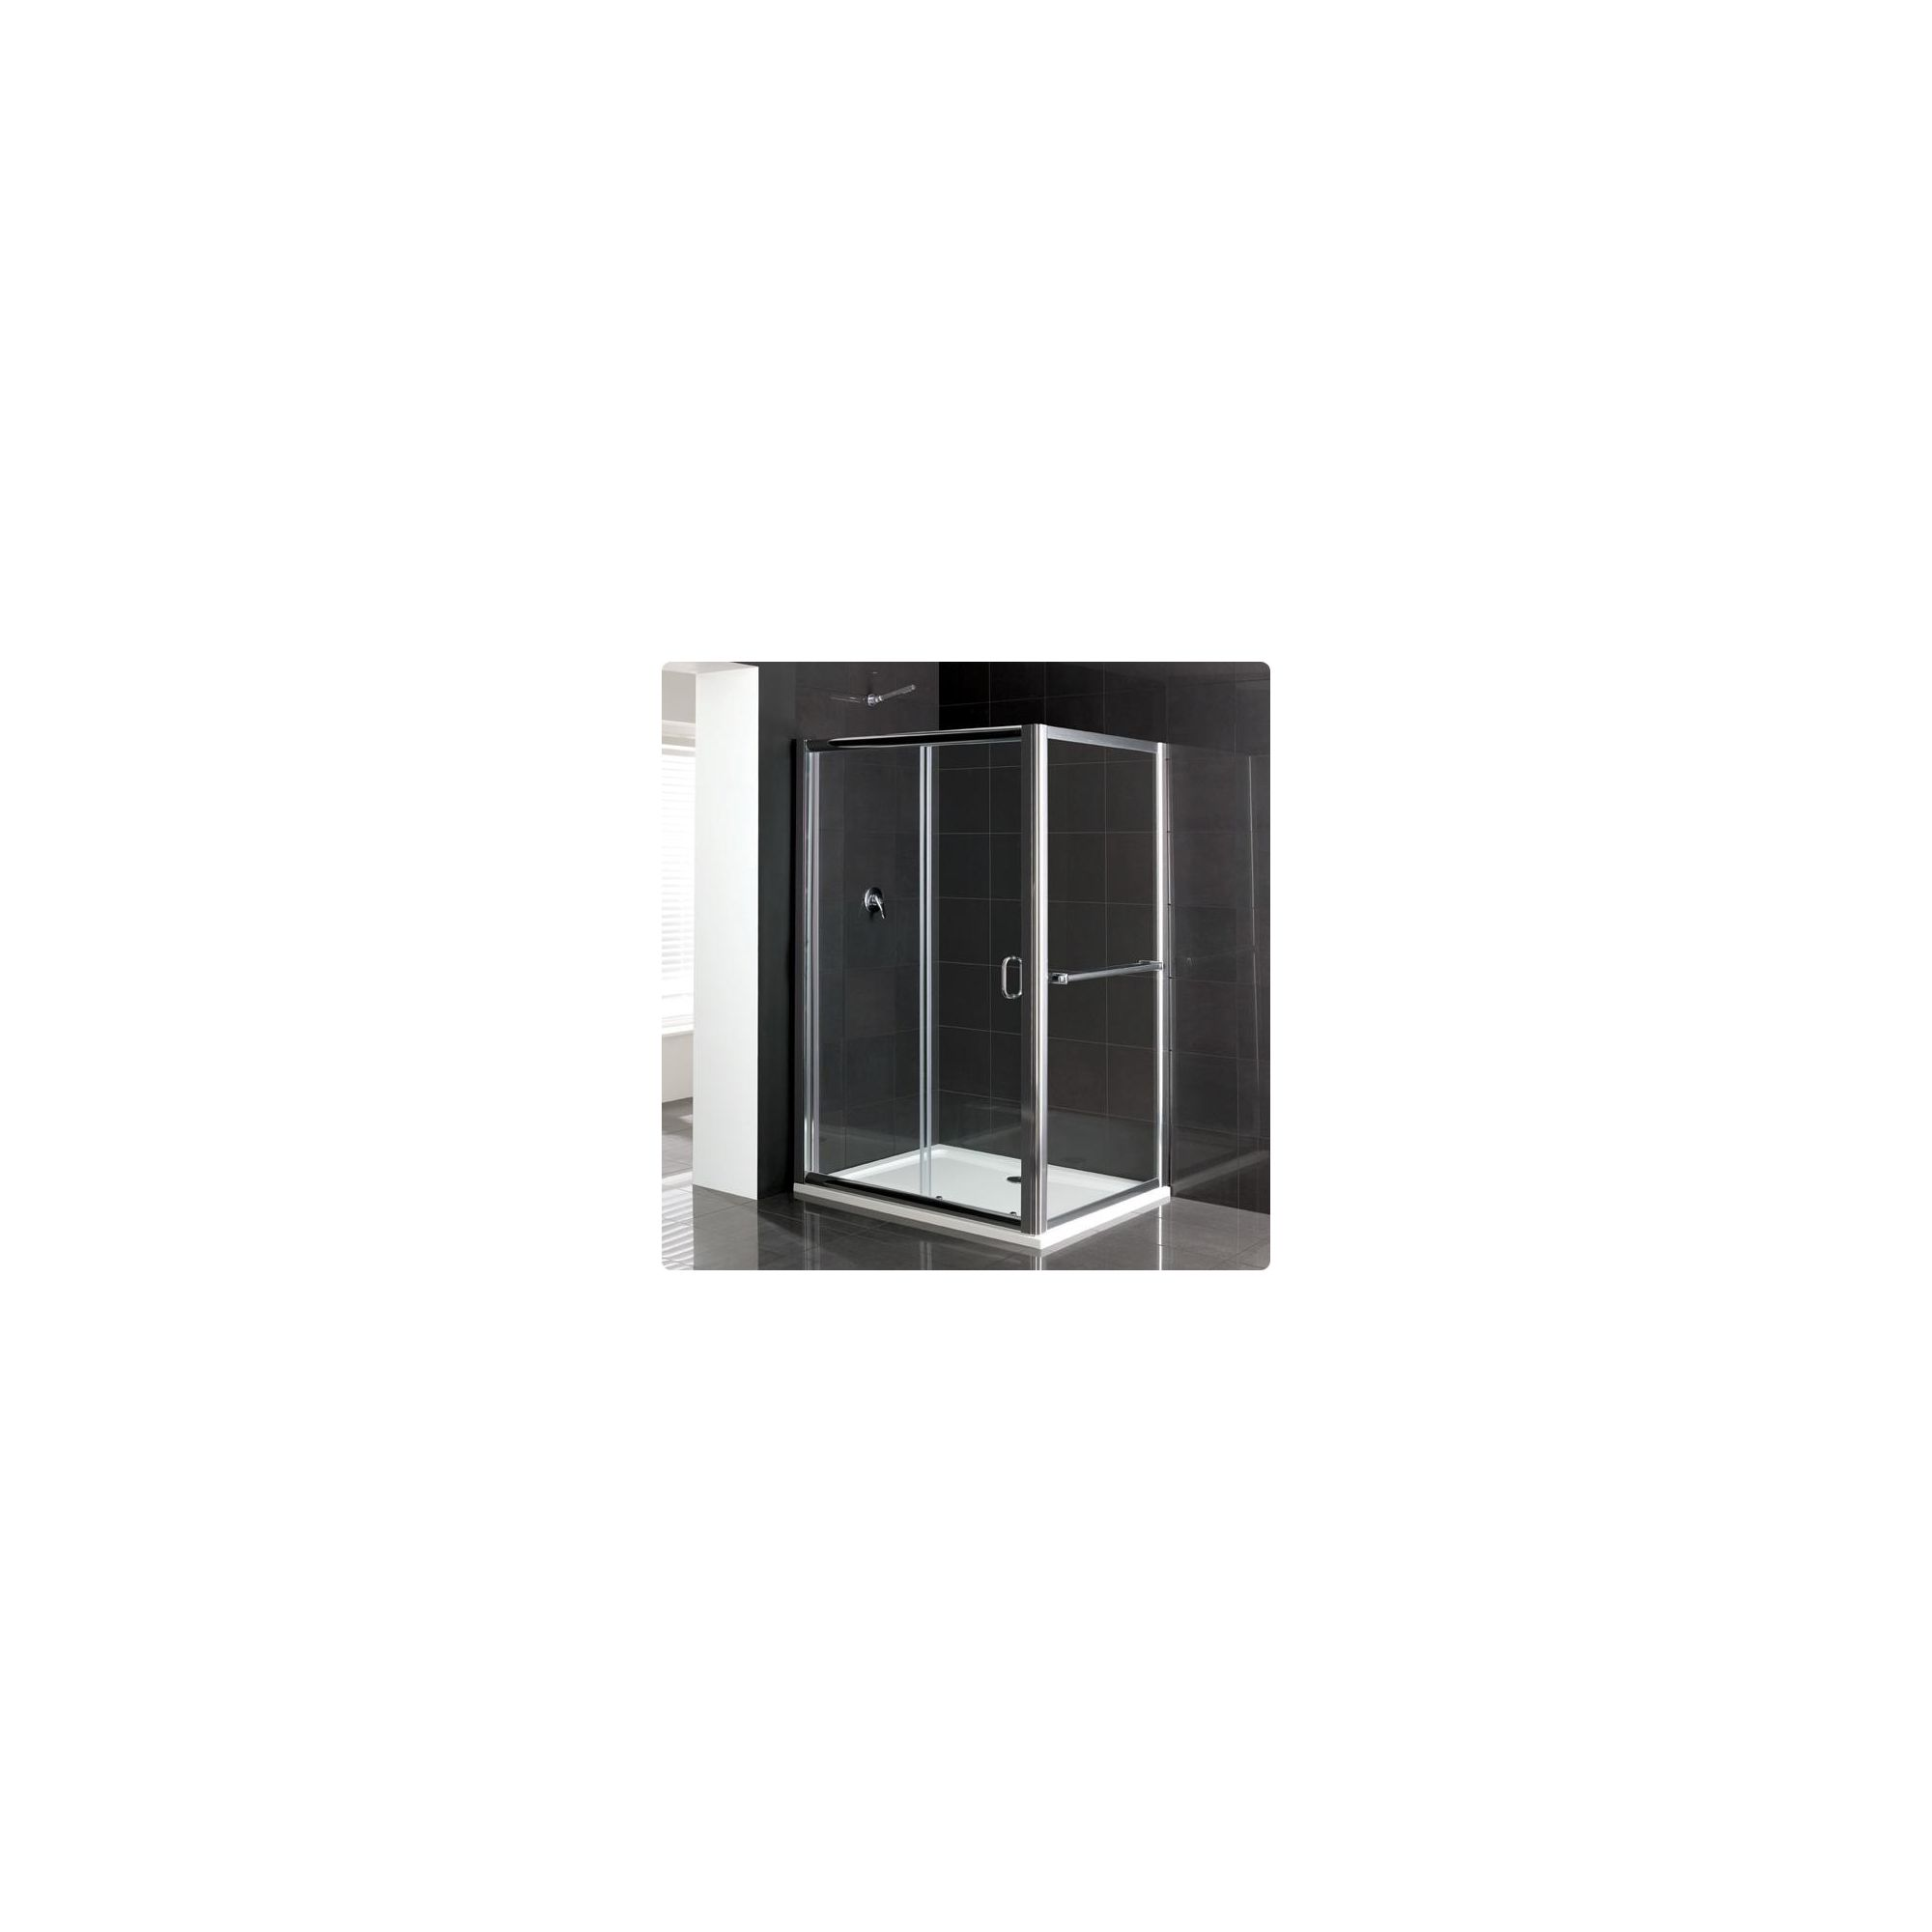 Duchy Elite Silver Sliding Door Shower Enclosure, 1200mm x 900mm, Standard Tray, 6mm Glass at Tesco Direct